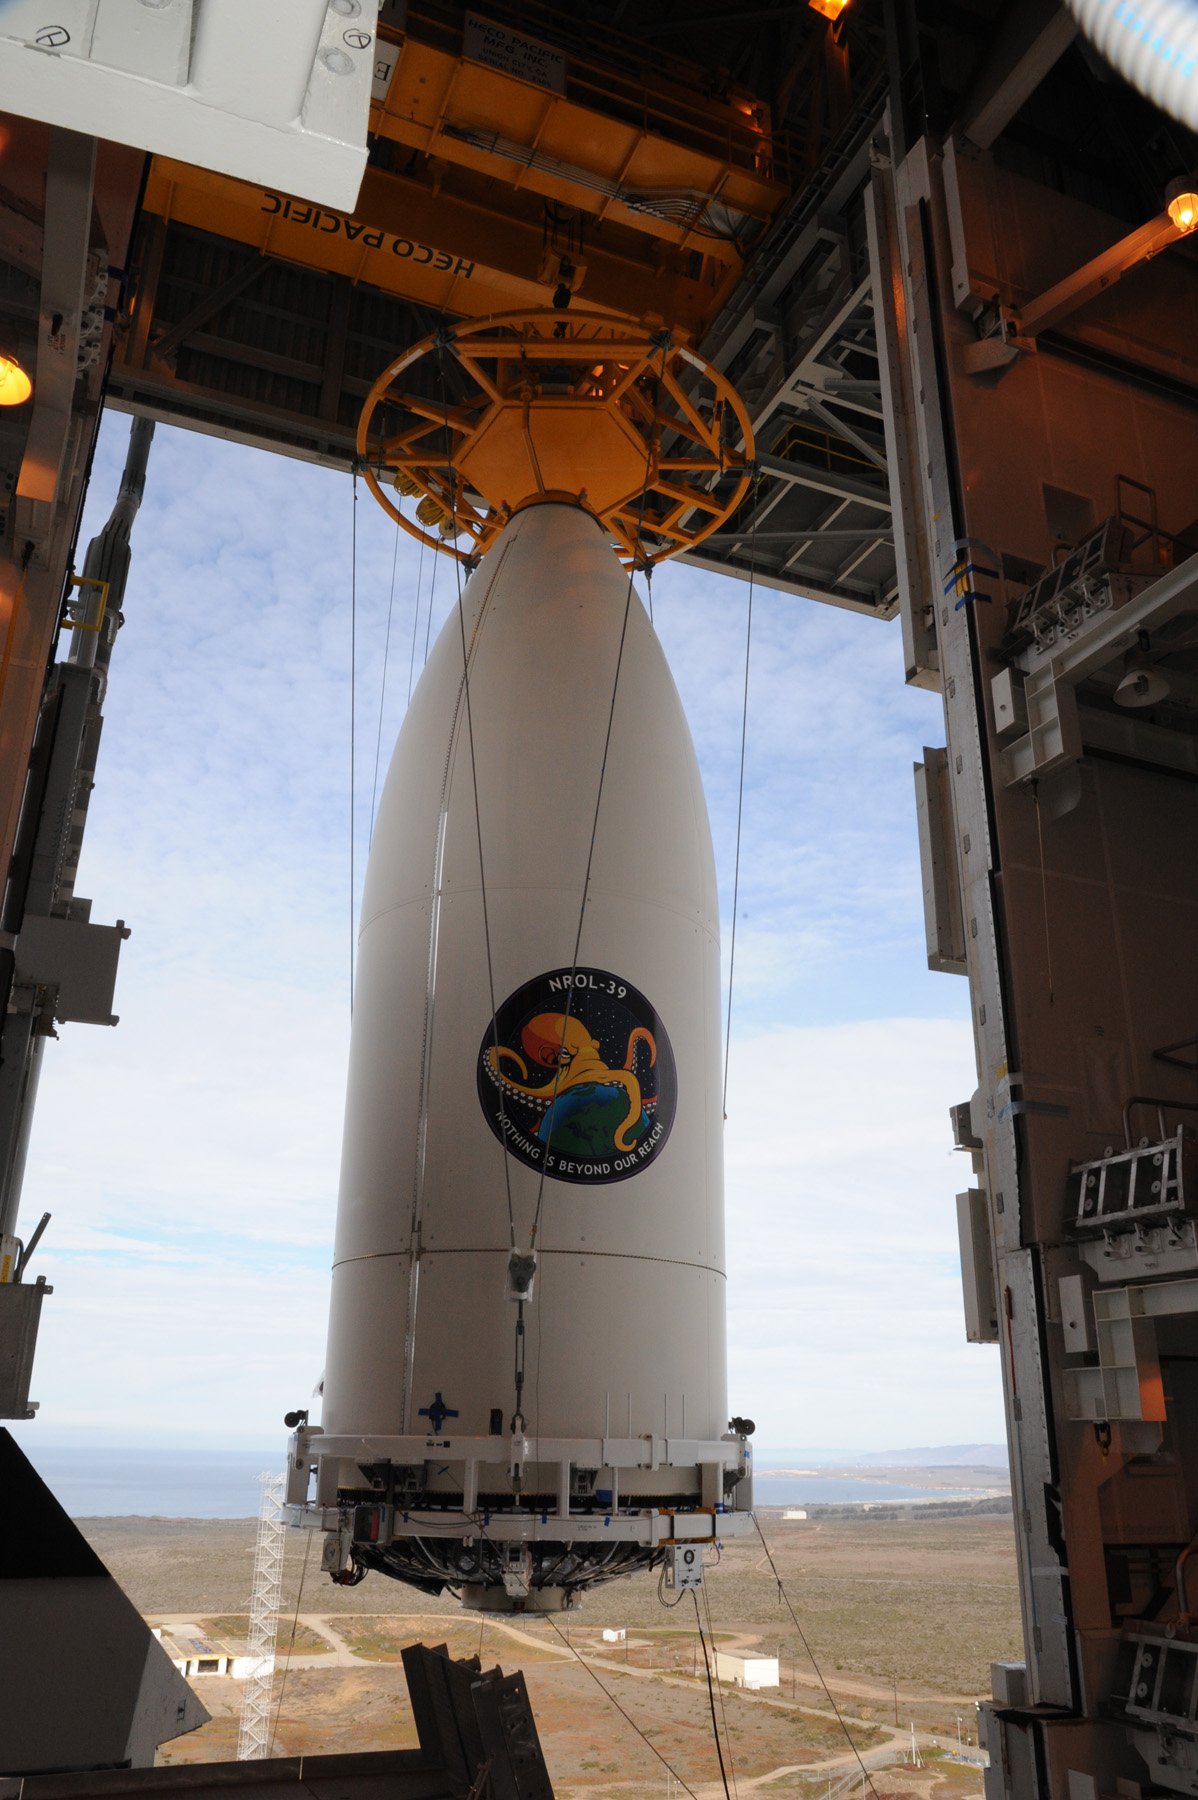 NROL-39 Payload Mated to Atlas V Booster